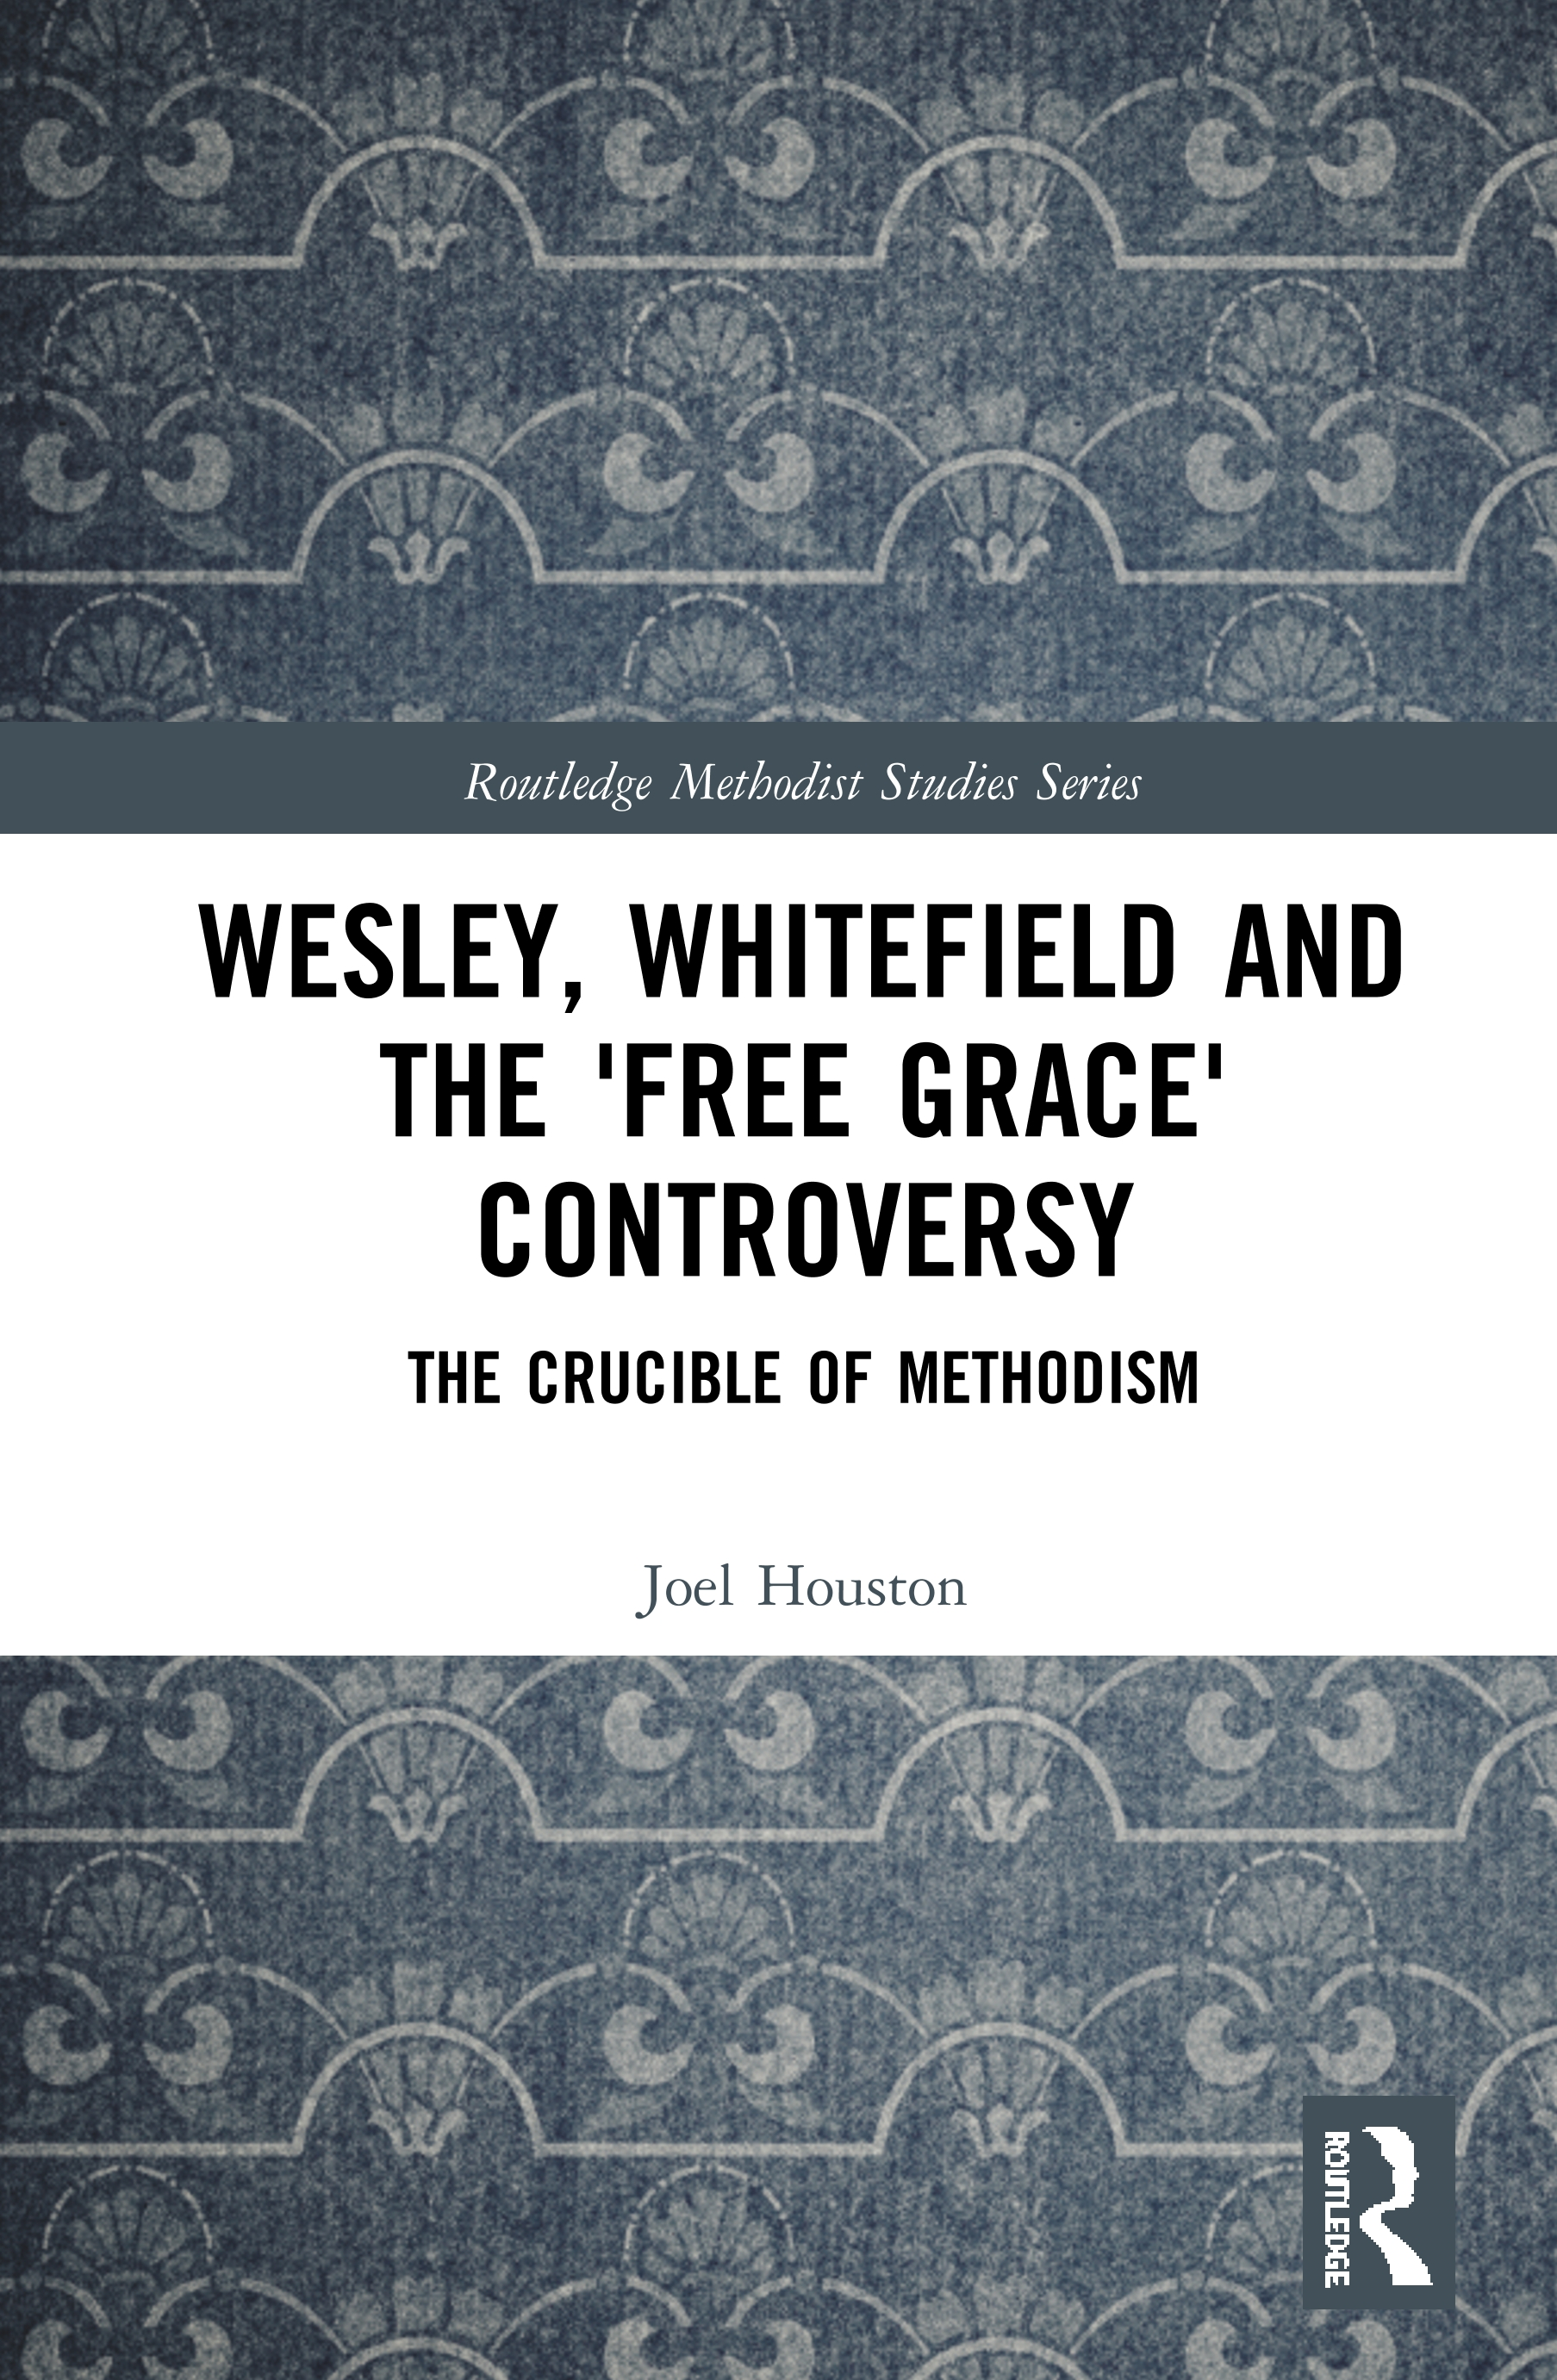 Wesley, Whitefield and the 'Free Grace' Controversy: The Crucible of Methodism book cover